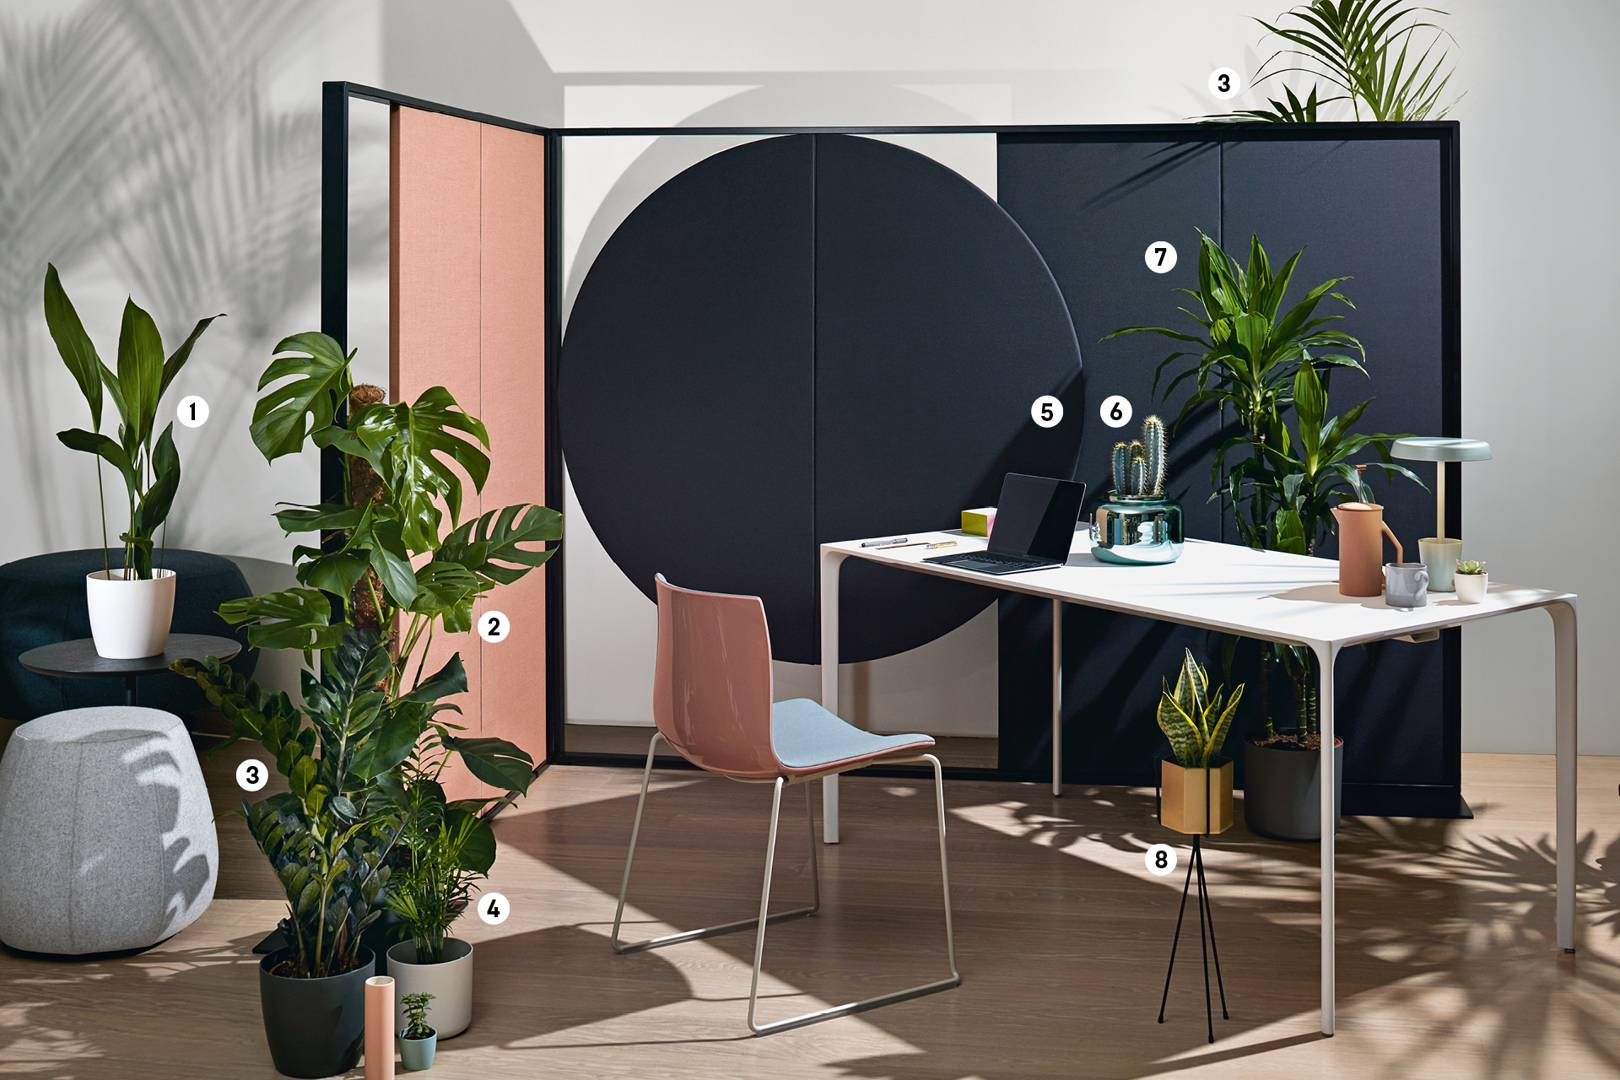 How to use office plants to boost productivity and job